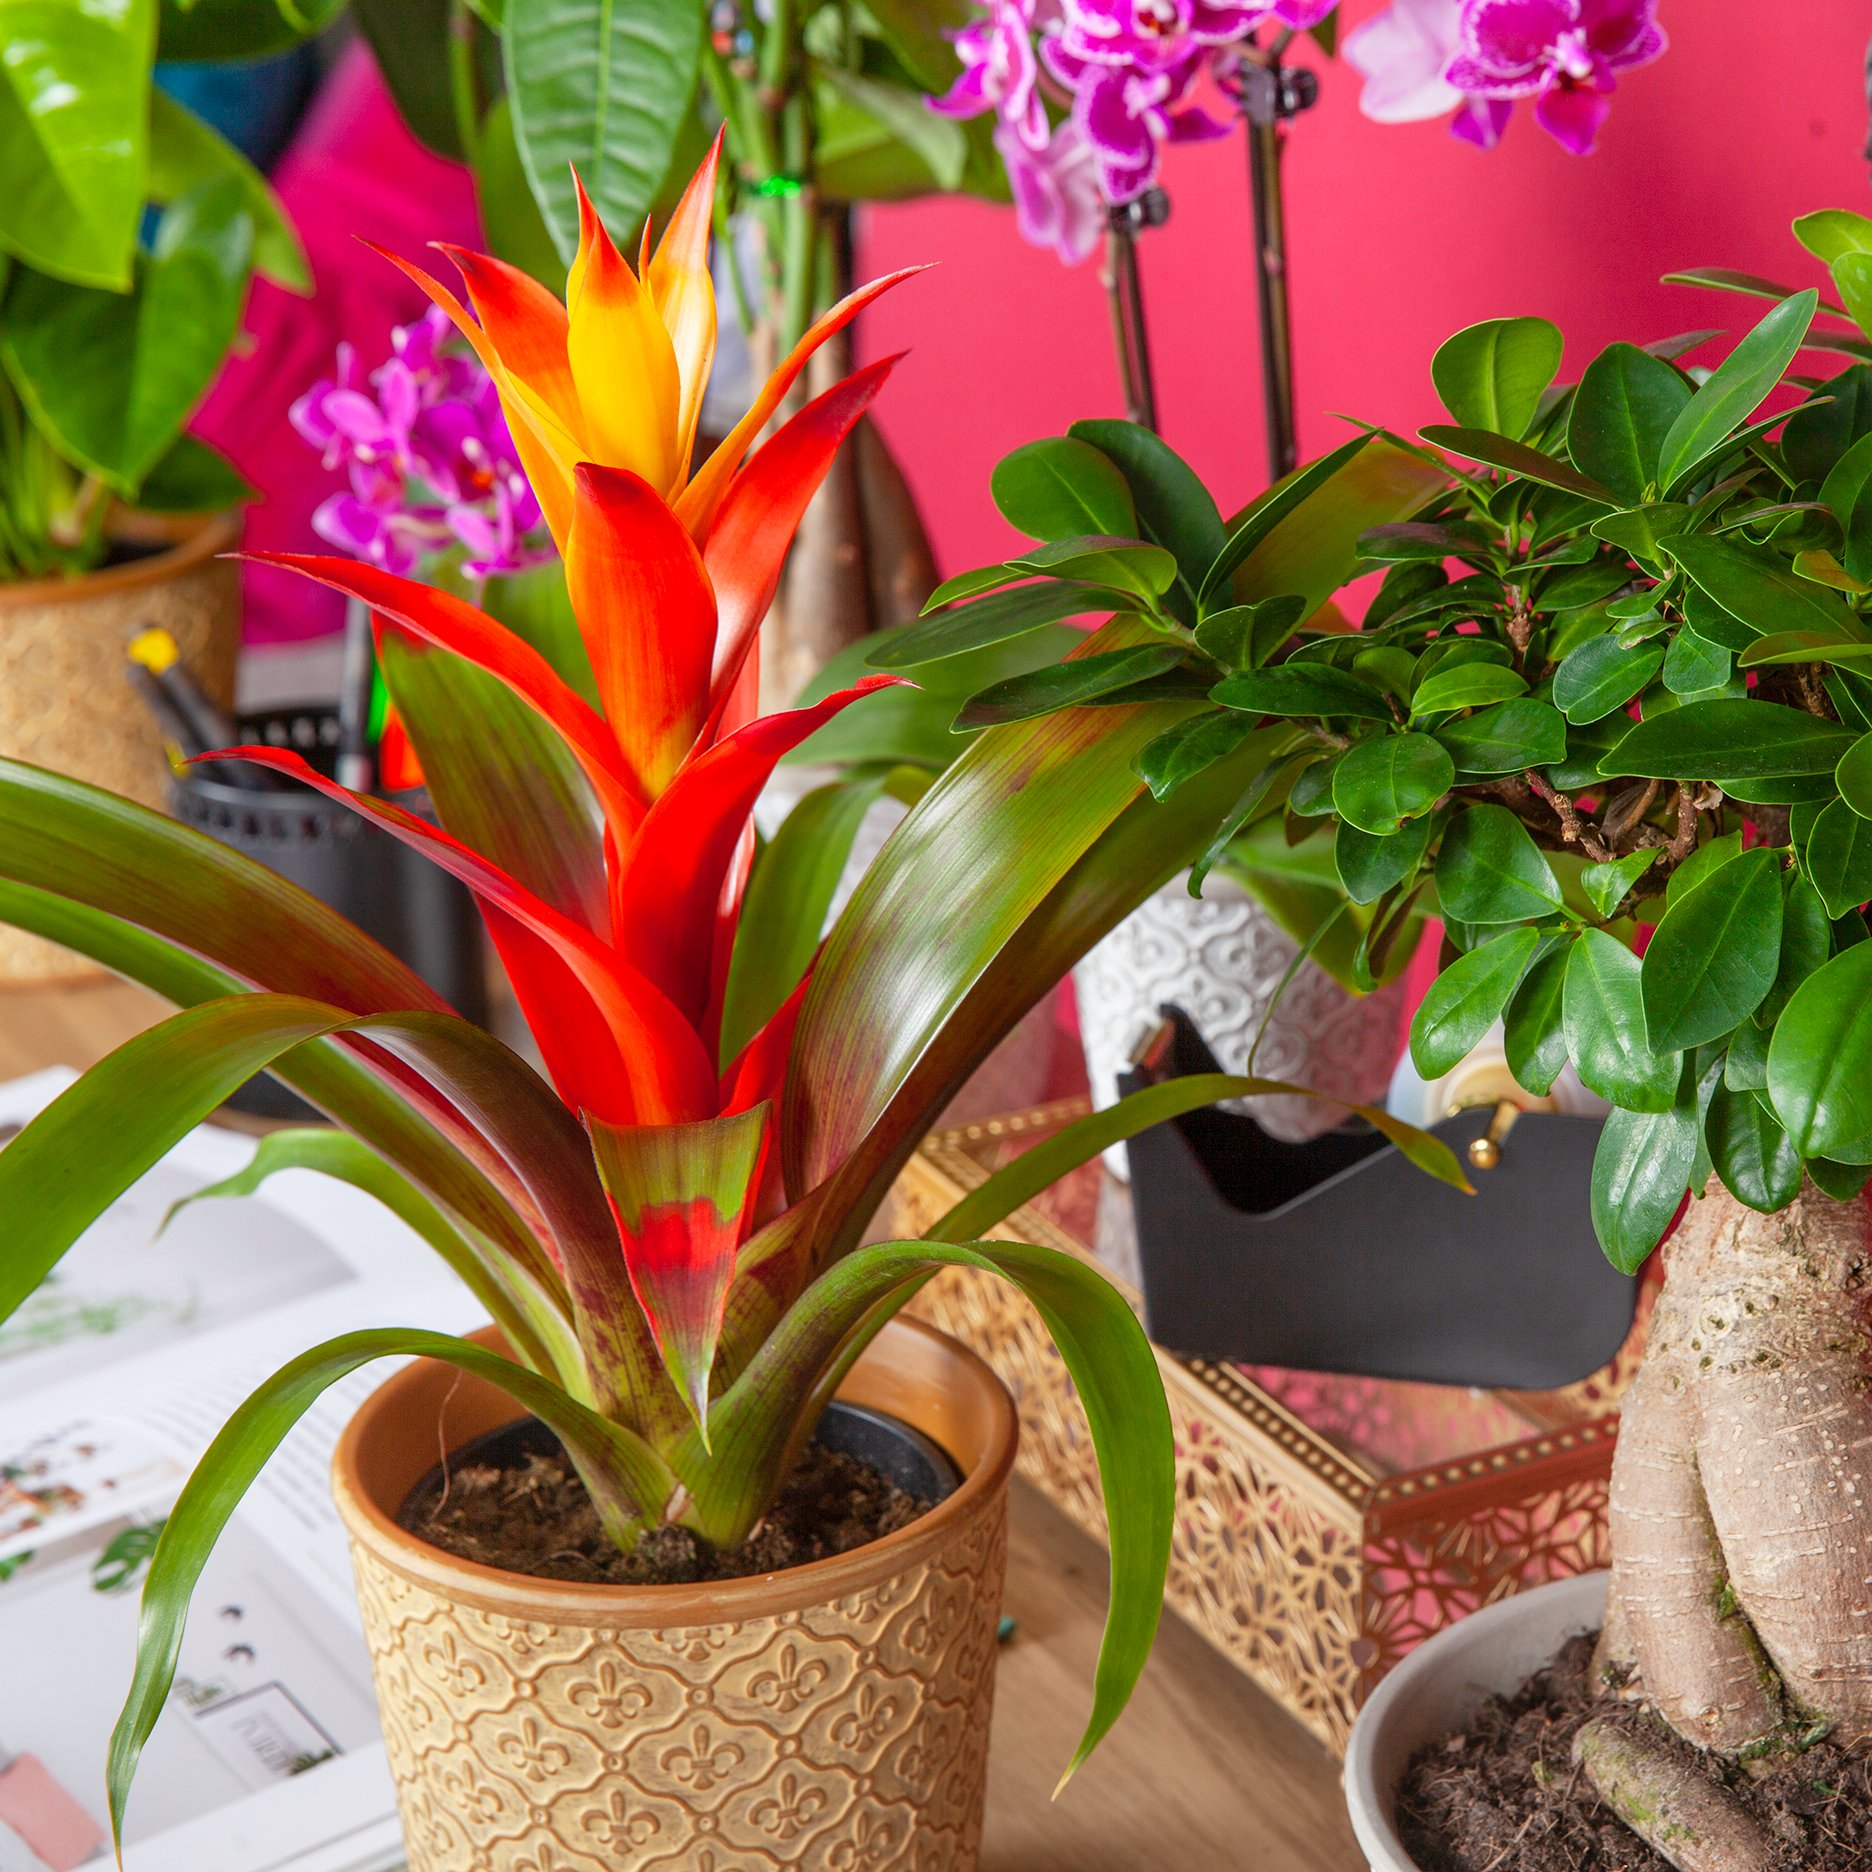 A bright orange and yellow potted bromeliad